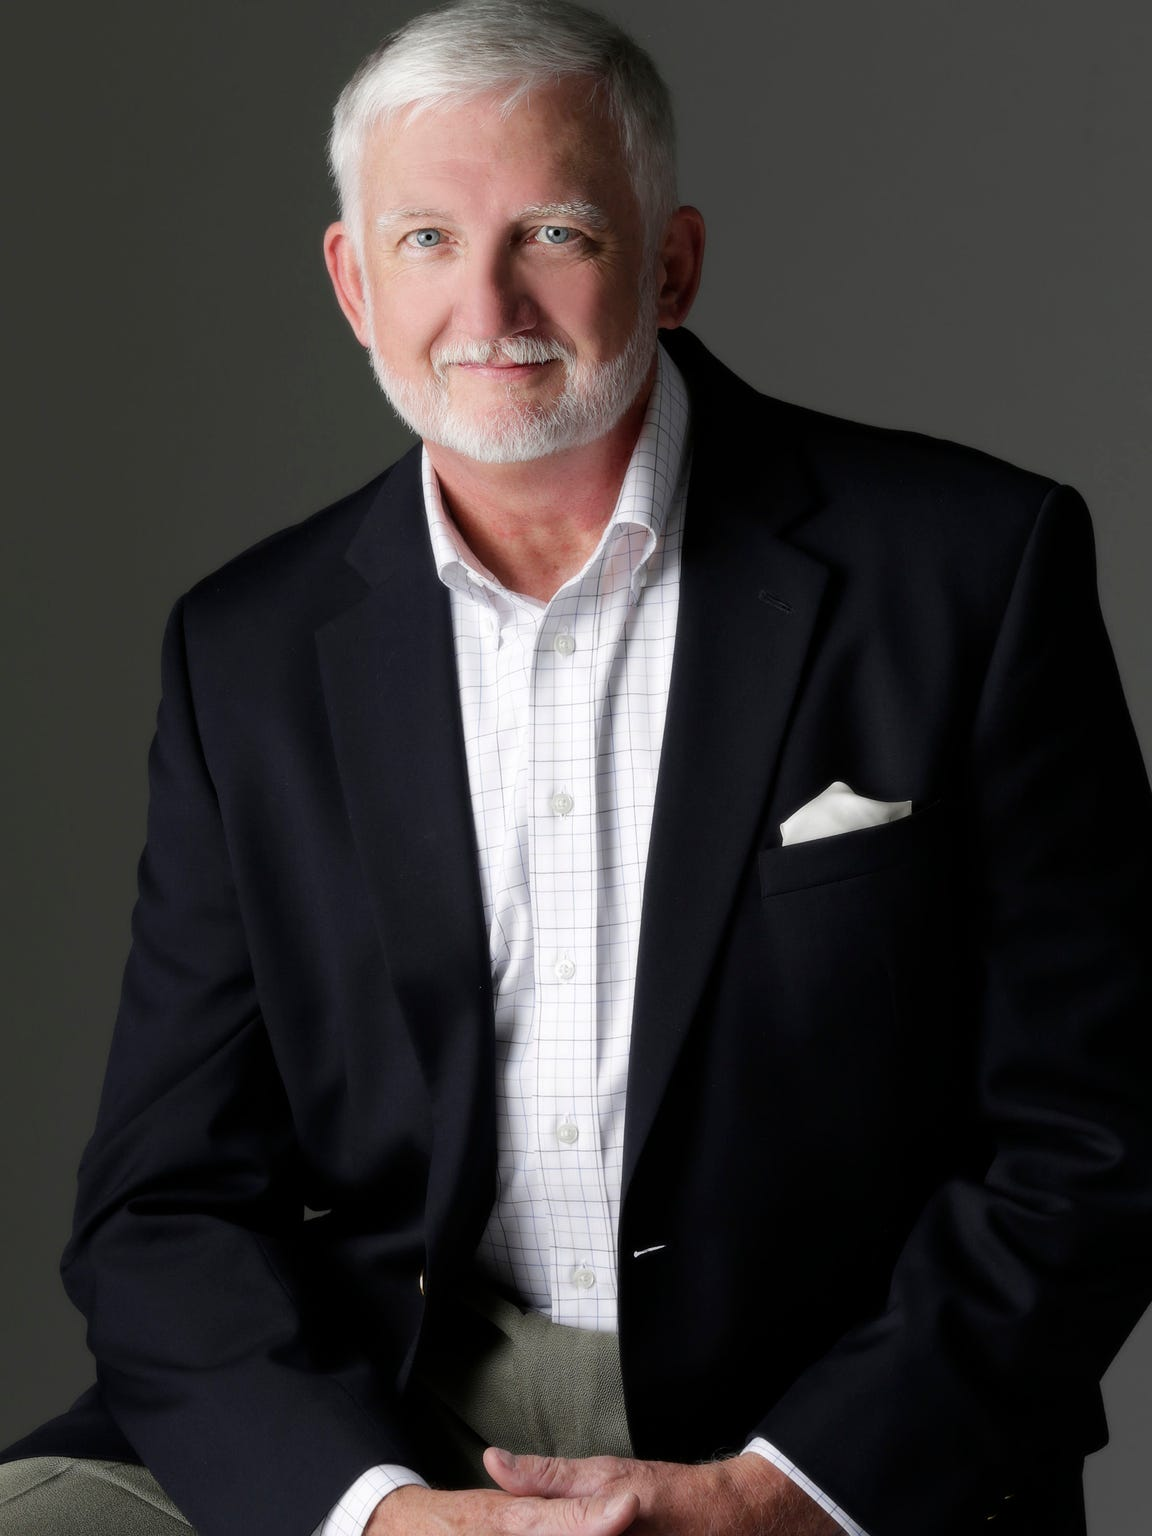 Buck Van Hooser has worked in sales, management, marketing